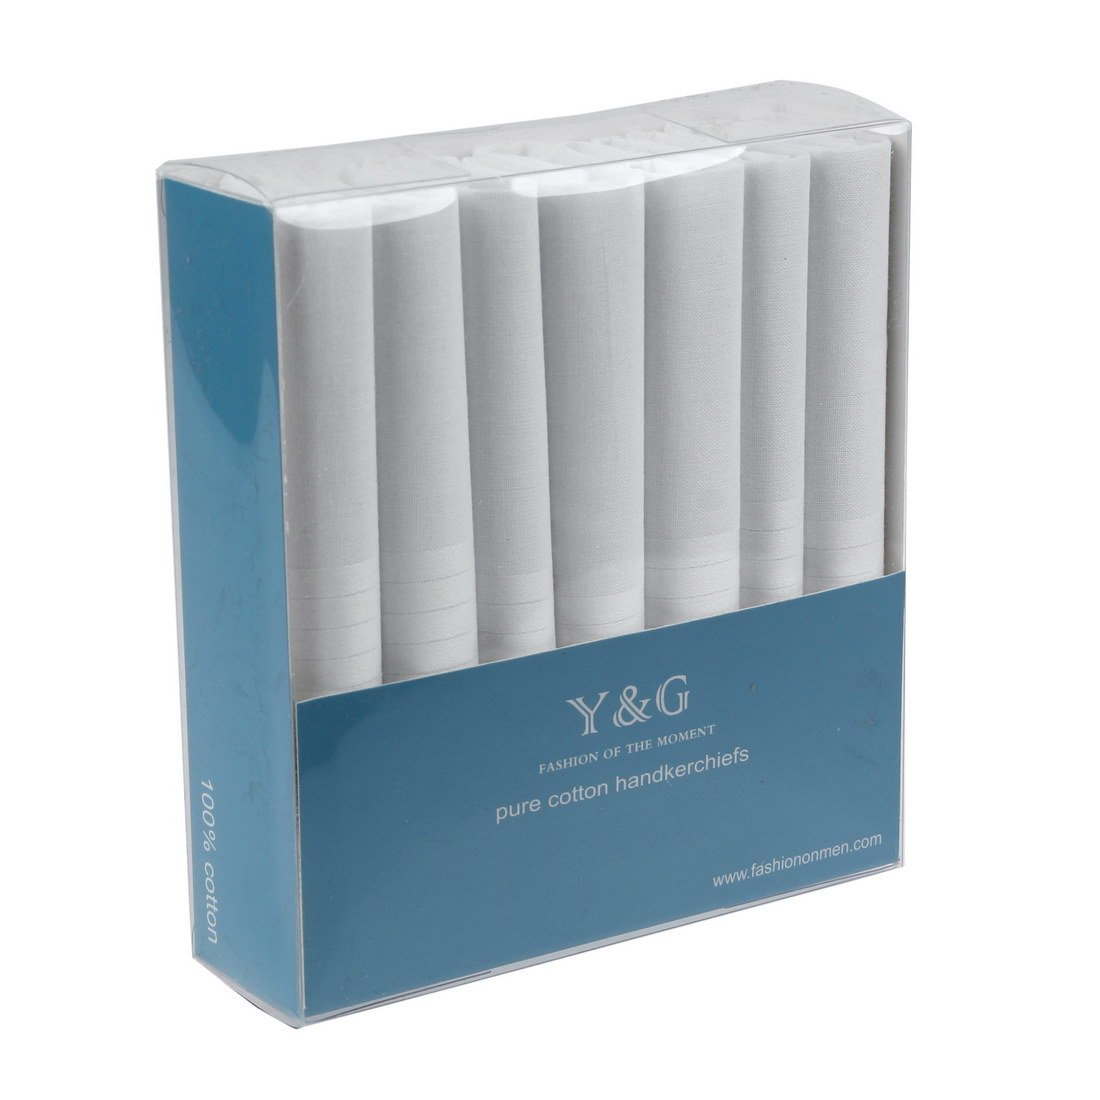 YEC0111 Fitted Accessories Mens White Solid Cotton Handkerchiefs Best Gift Giving 7 Pics Set One Size By Y/&G